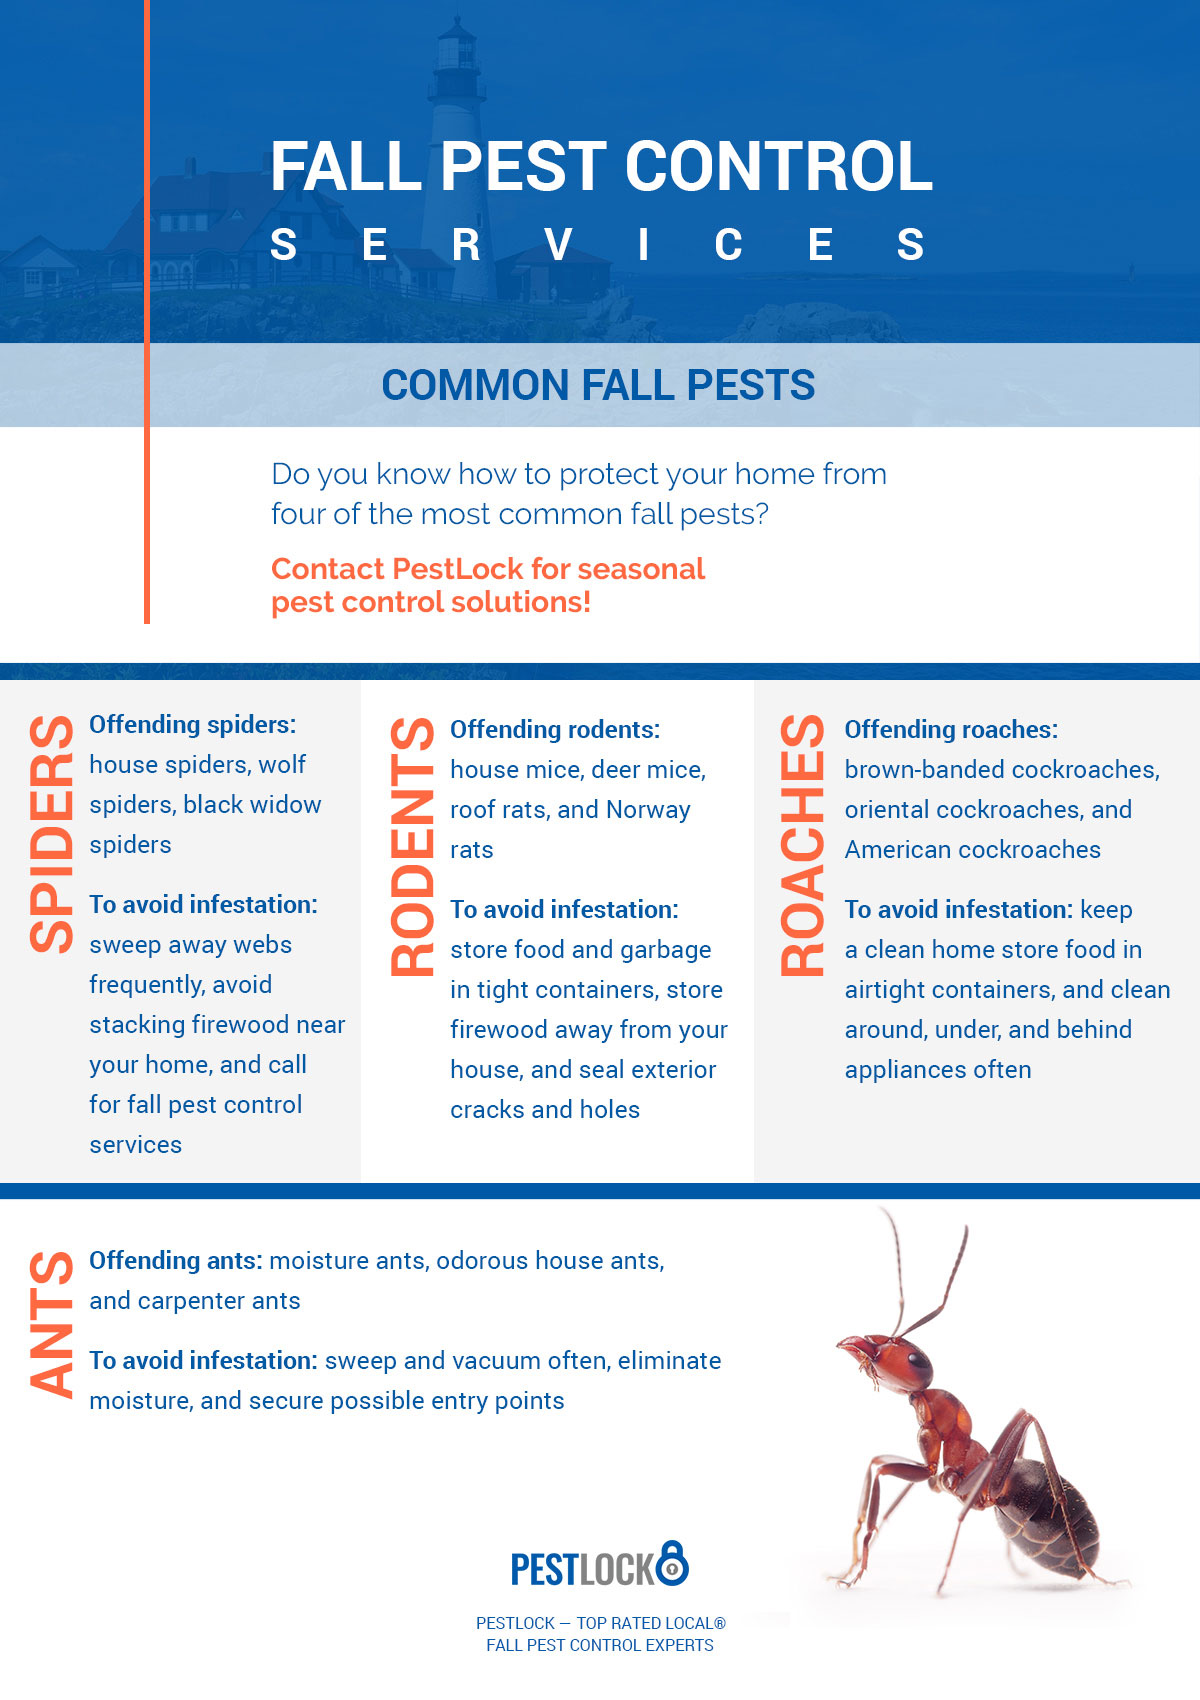 Fall Pest Control - Call For Your Fall Pest Inspection